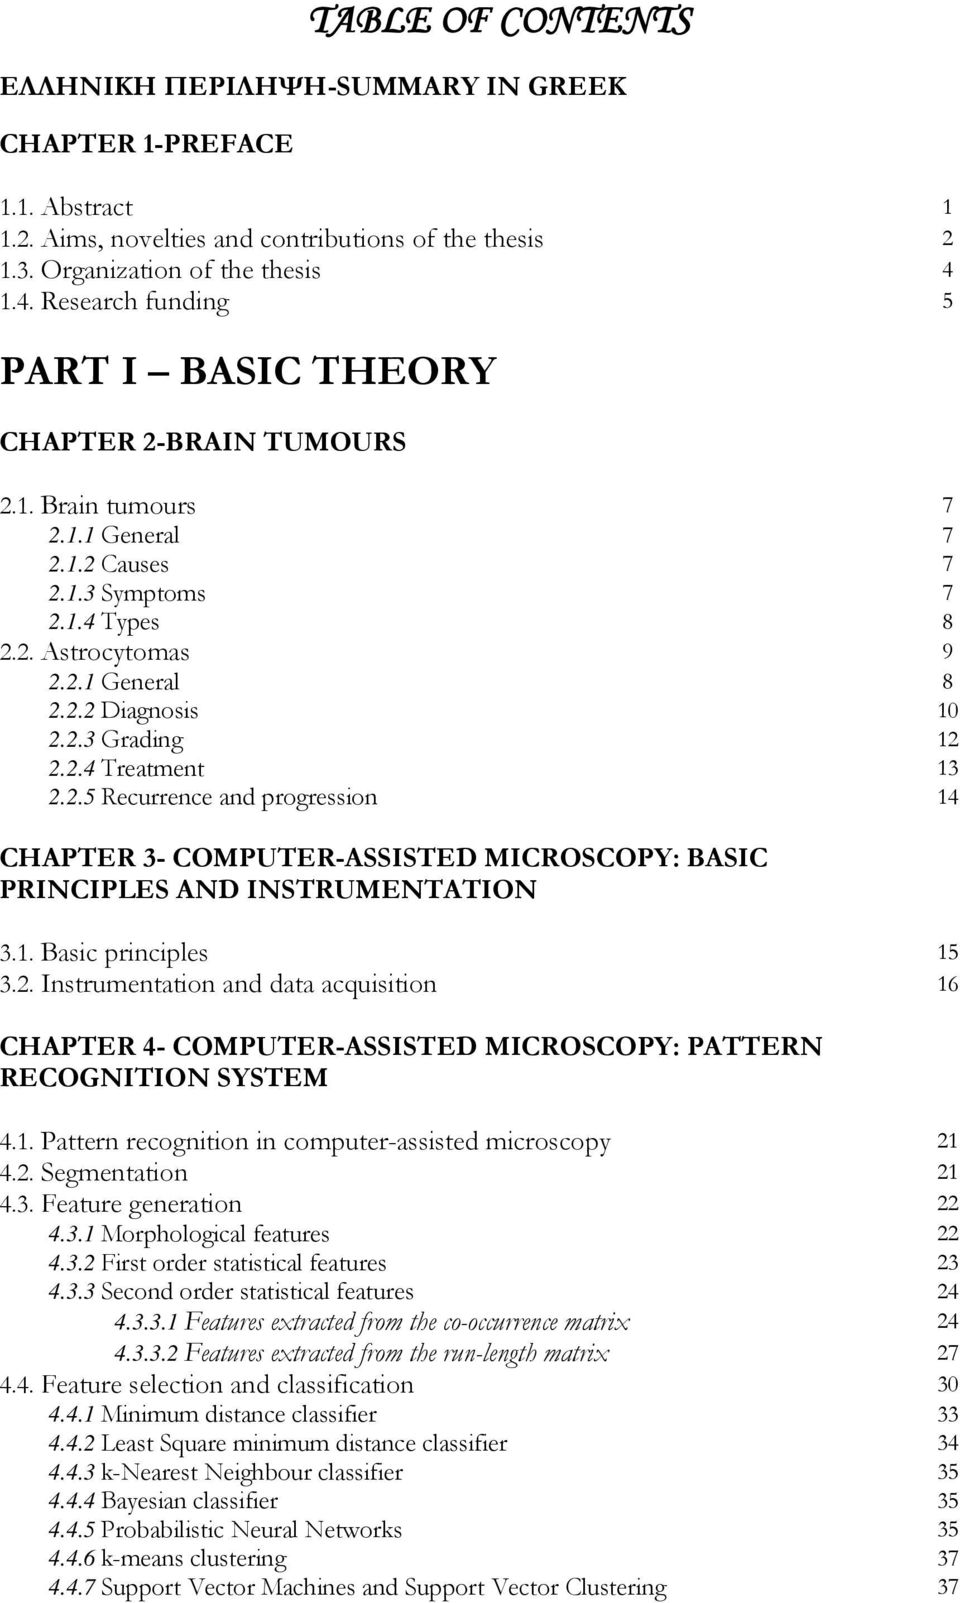 2.3 Grading 12 2.2.4 Treatment 13 2.2.5 Recurrence and progression 14 CHAPTER 3- COMPUTER-ASSISTED MICROSCOPY: BASIC PRINCIPLES AND INSTRUMENTATION 3.1. Basic principles 15 3.2. Instrumentation and data acquisition 16 CHAPTER 4- COMPUTER-ASSISTED MICROSCOPY: PATTERN RECOGNITION SYSTEM 4.